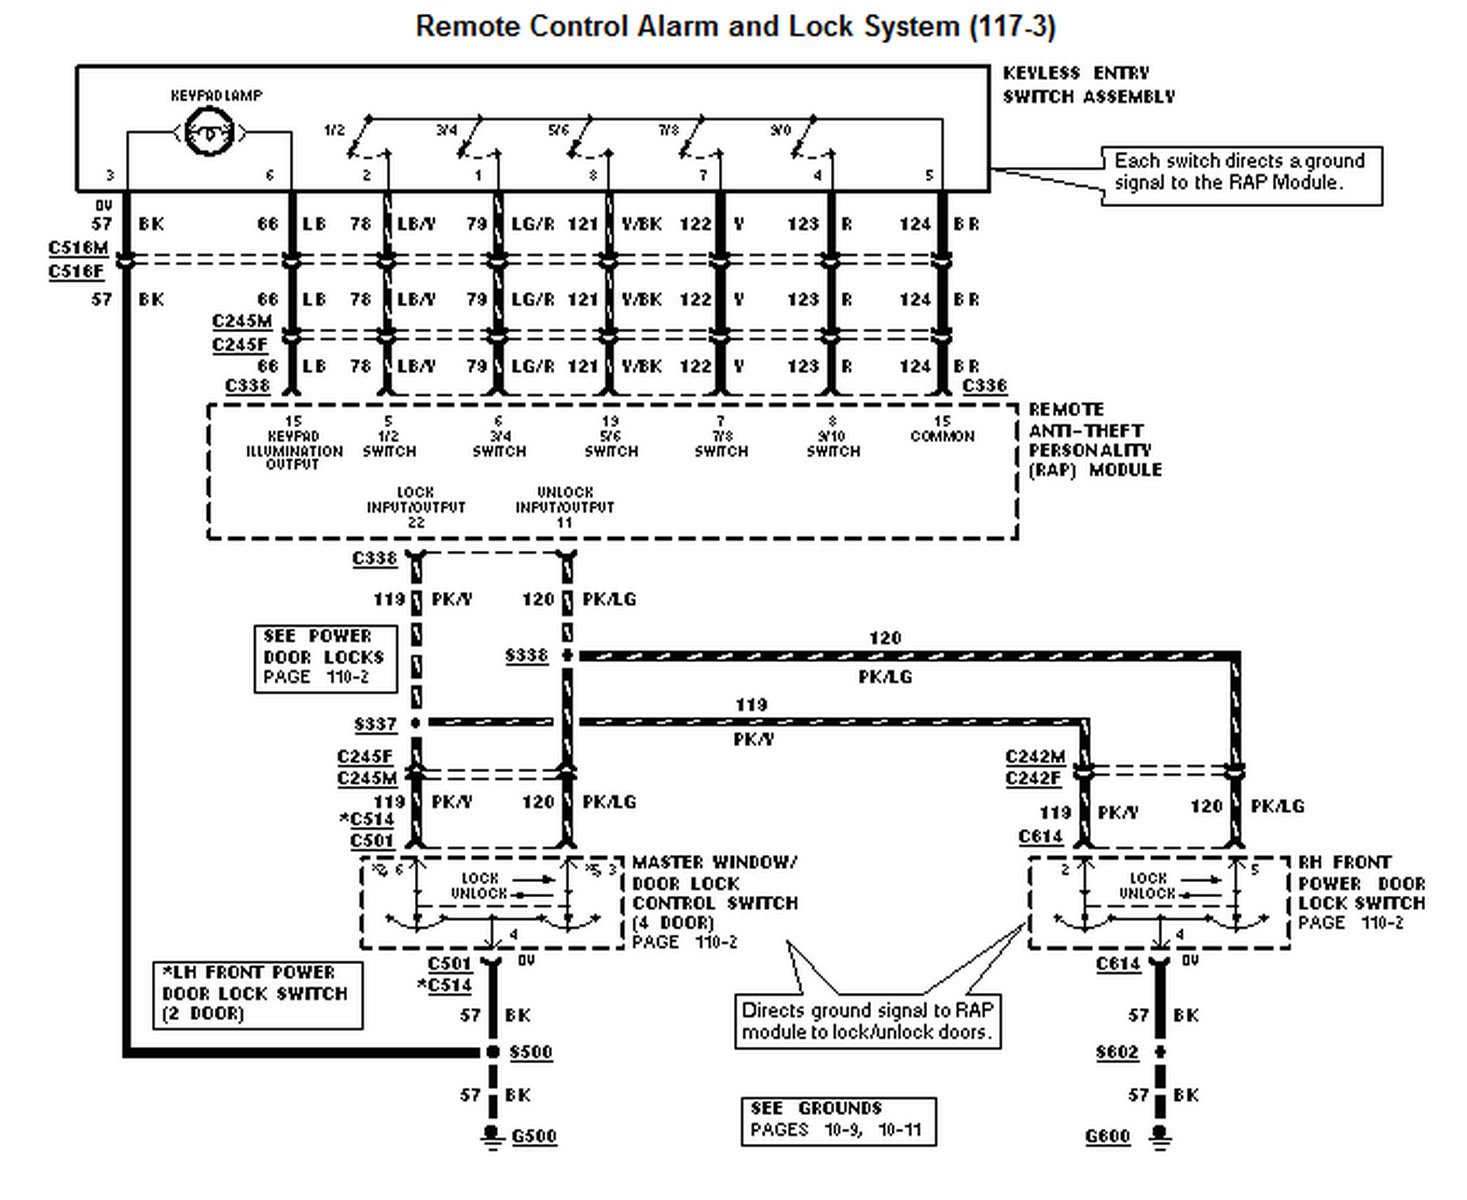 2005 ford explorer wiring schematic where can we find a free online ford explorer electrical ...